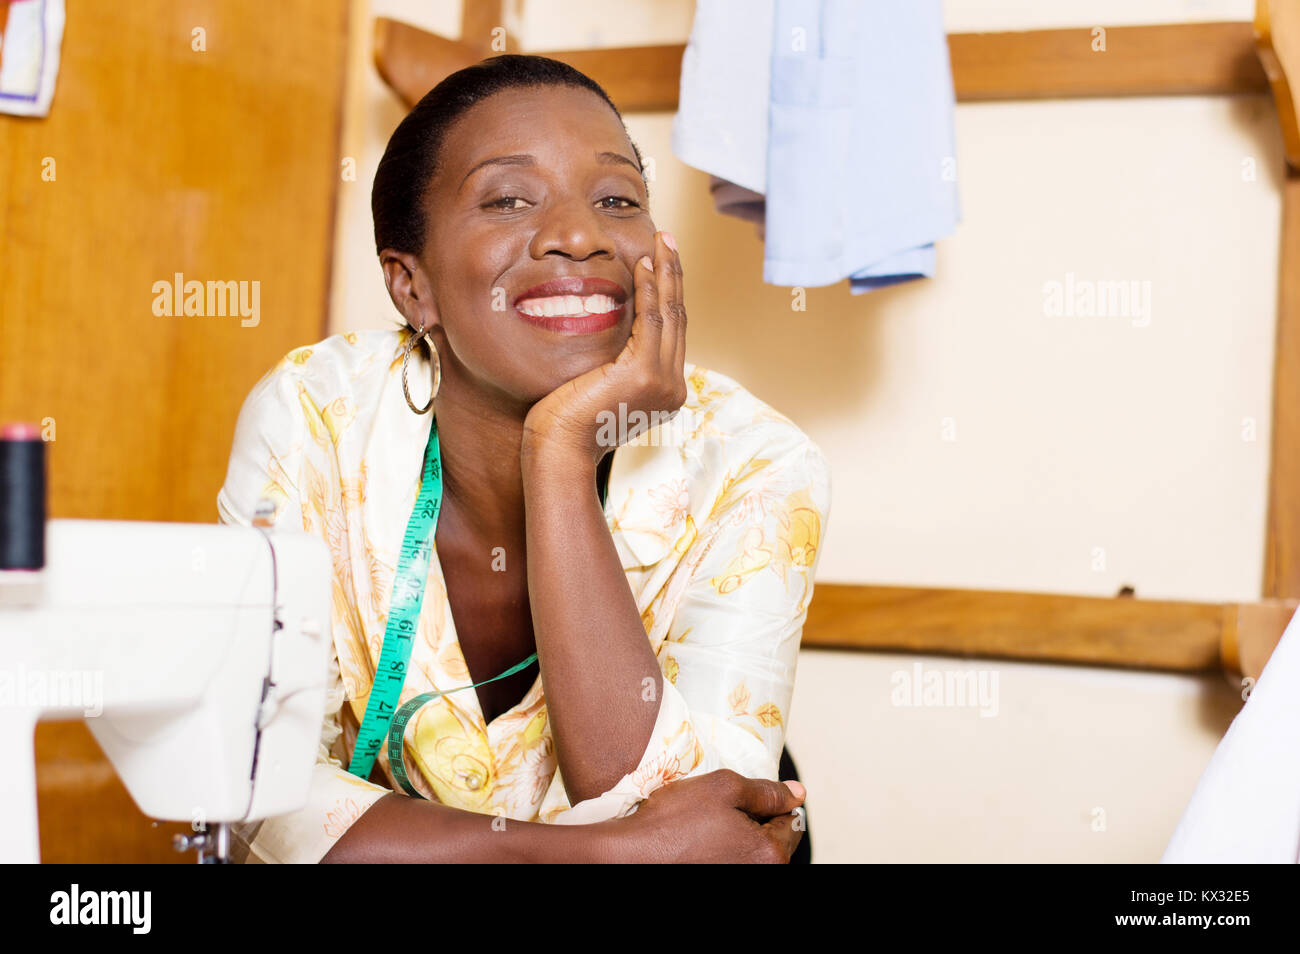 Beautiful woman seamstress smiling leaning on the table of her sewing machine and hand under the chin. - Stock Image